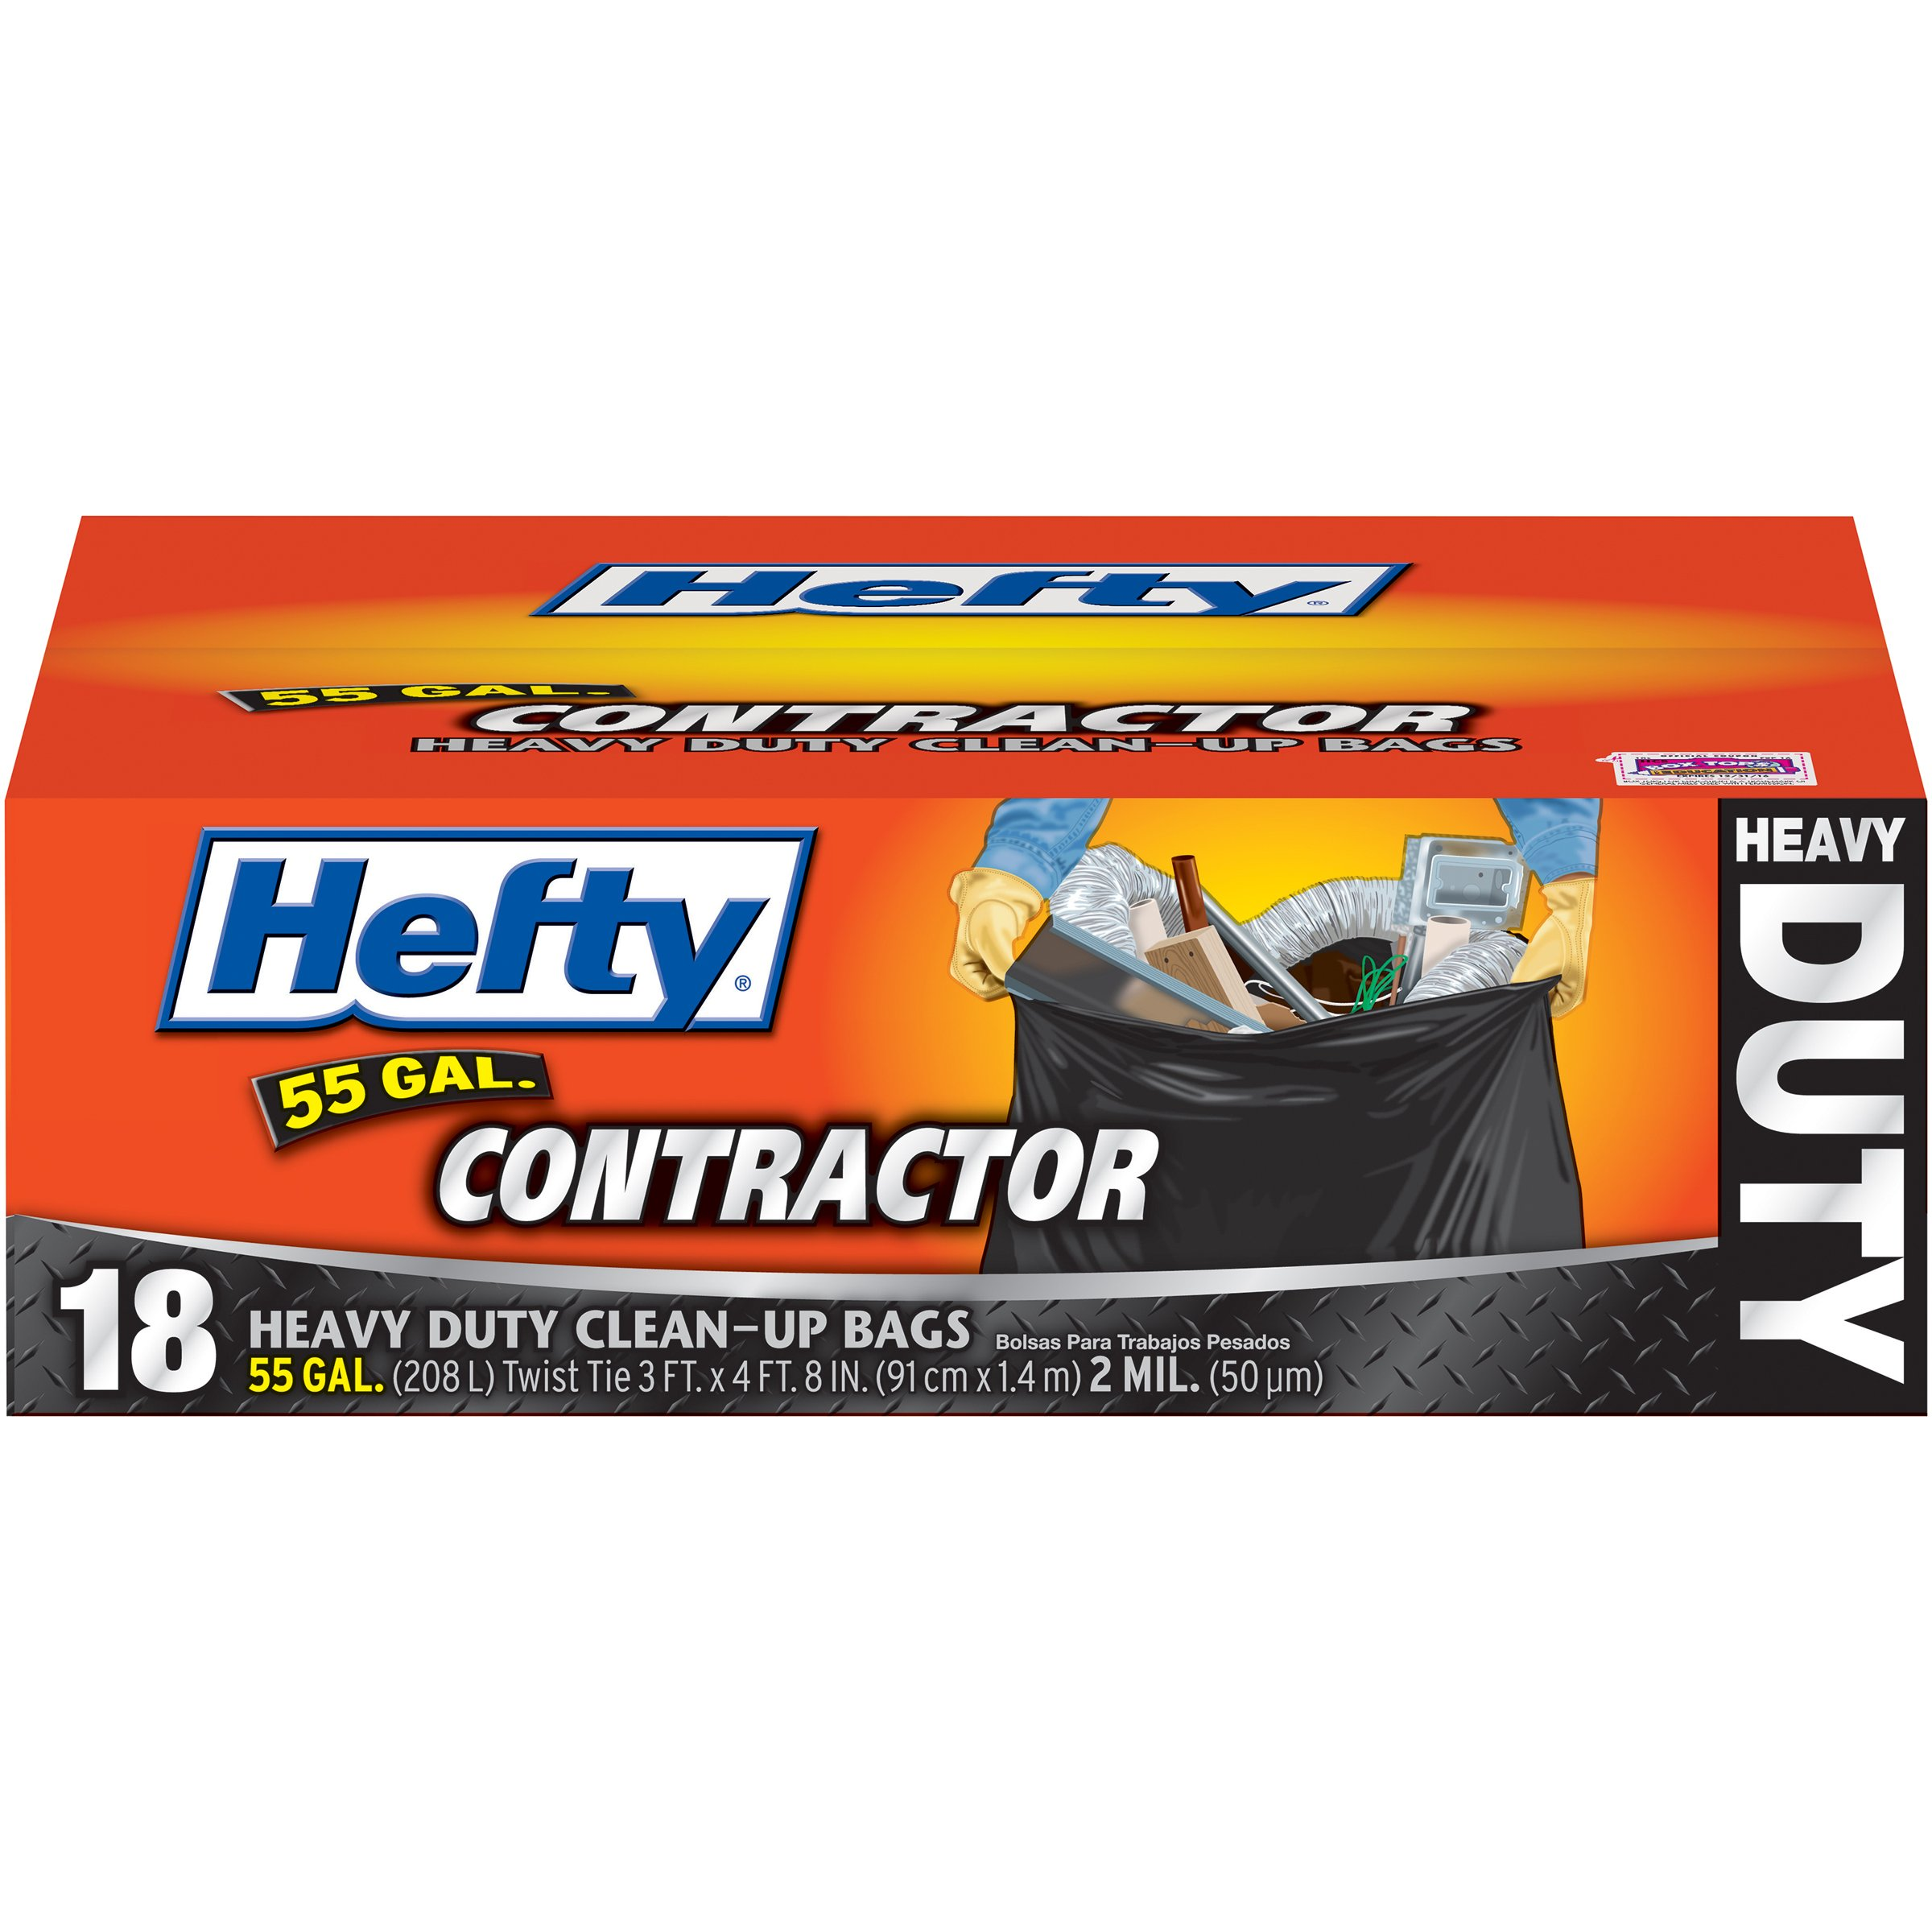 Hefty Heavy Duty Contractor Bags - 55 Gallon, 4 Packs of 18 Count (72 Total) by Hefty